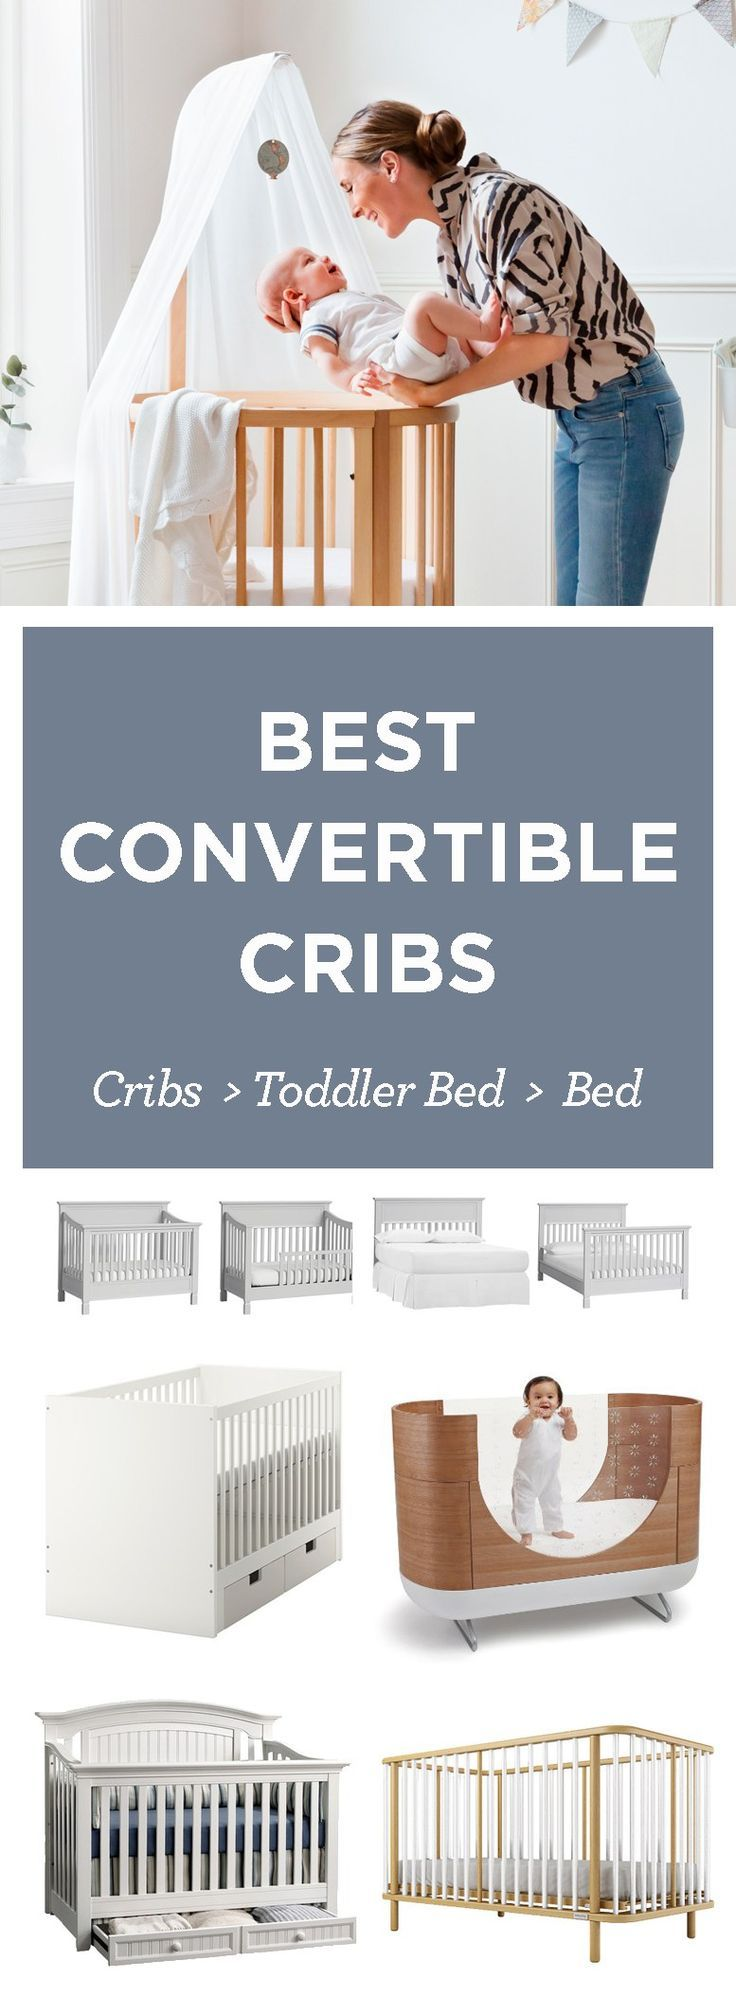 Special enclosed crib for premature babies - Best Convertible Cribs